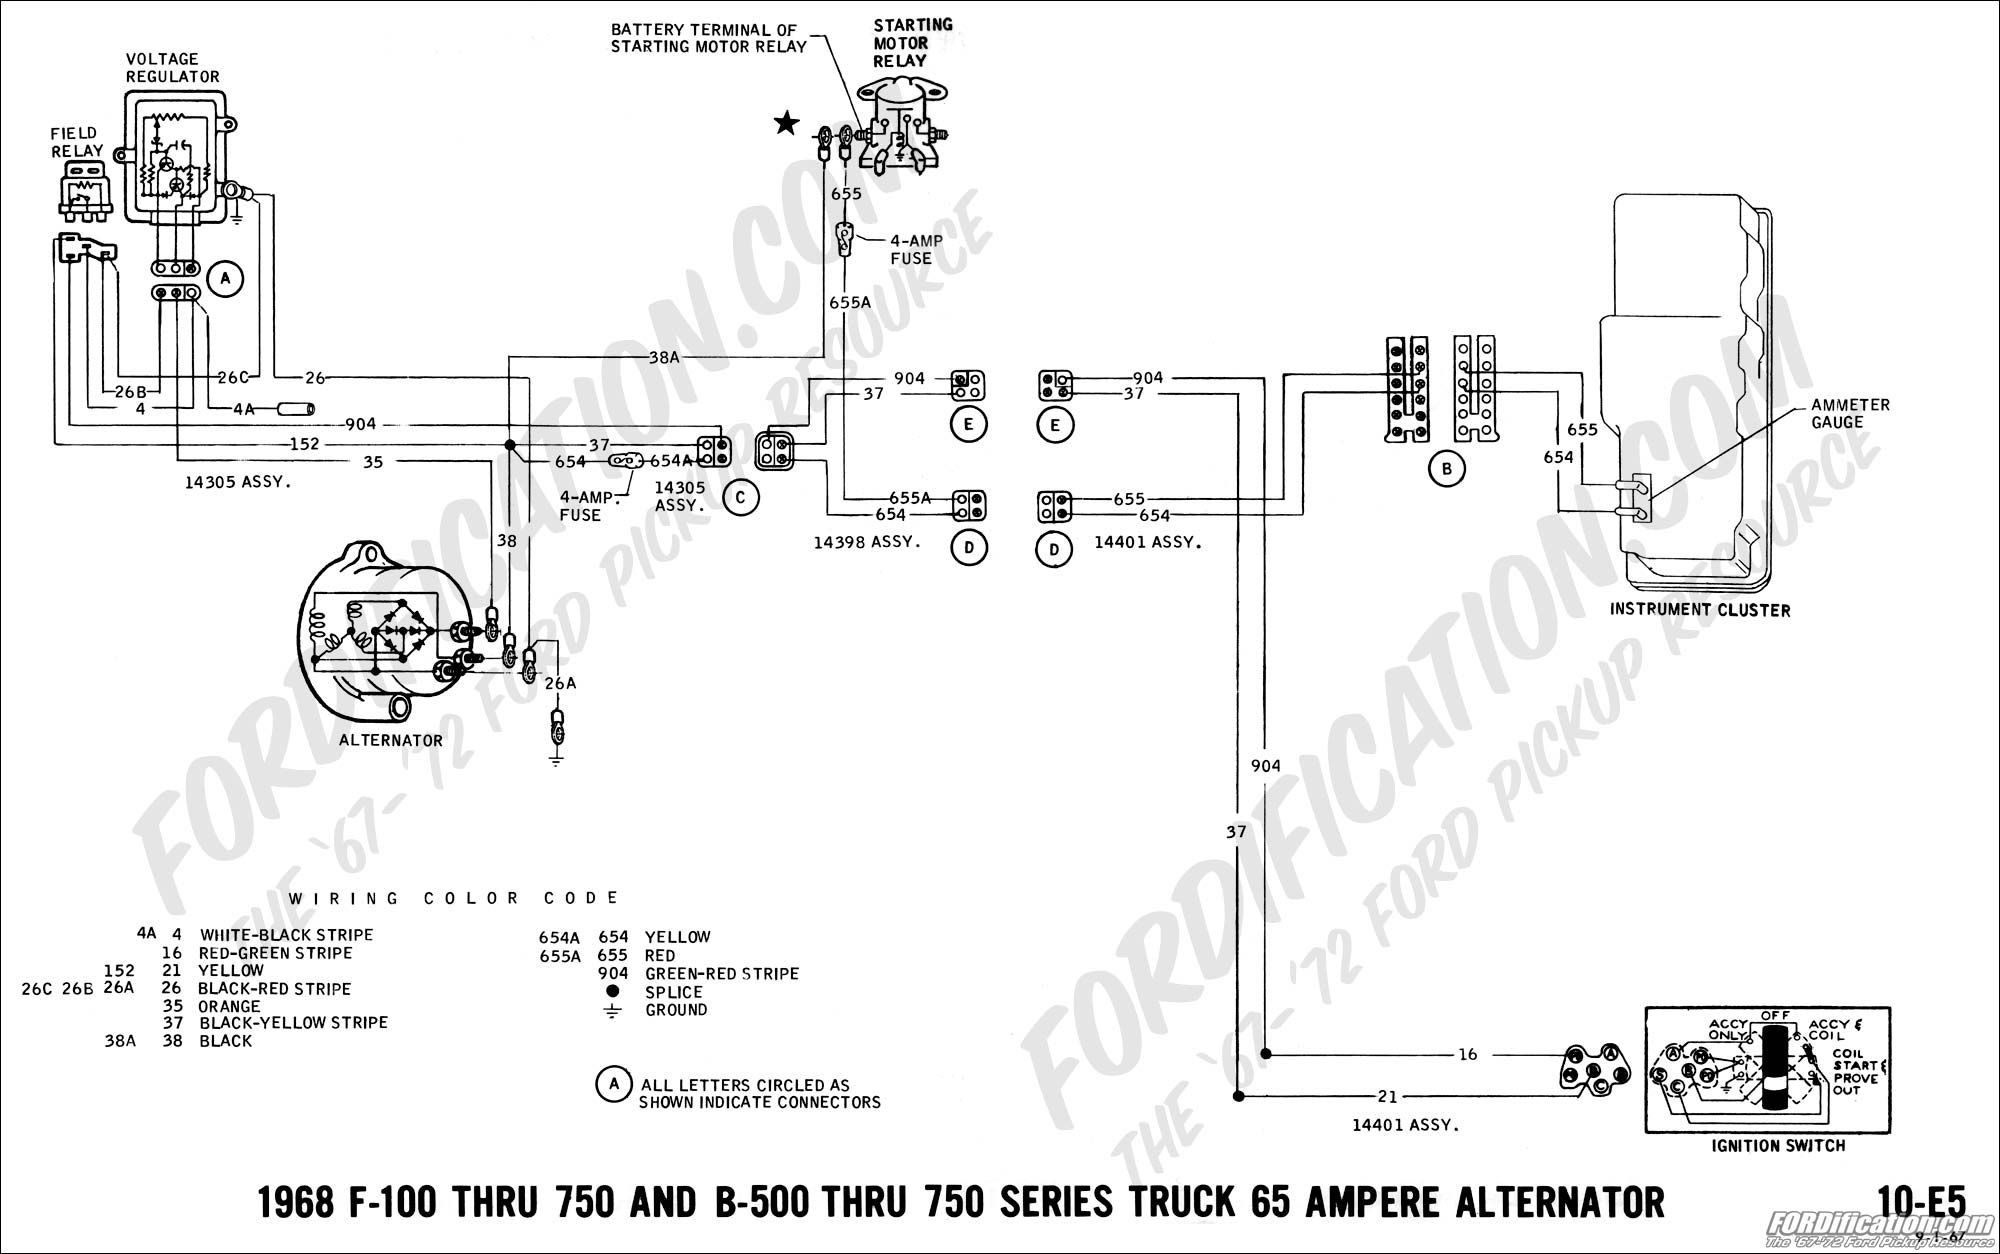 Inspirational Wiring Diagram For Leece Neville Alternator Diagrams Digramssample Diagramimages Wiringdiagramsample Wiringdia Ford Truck Alternator Diagram